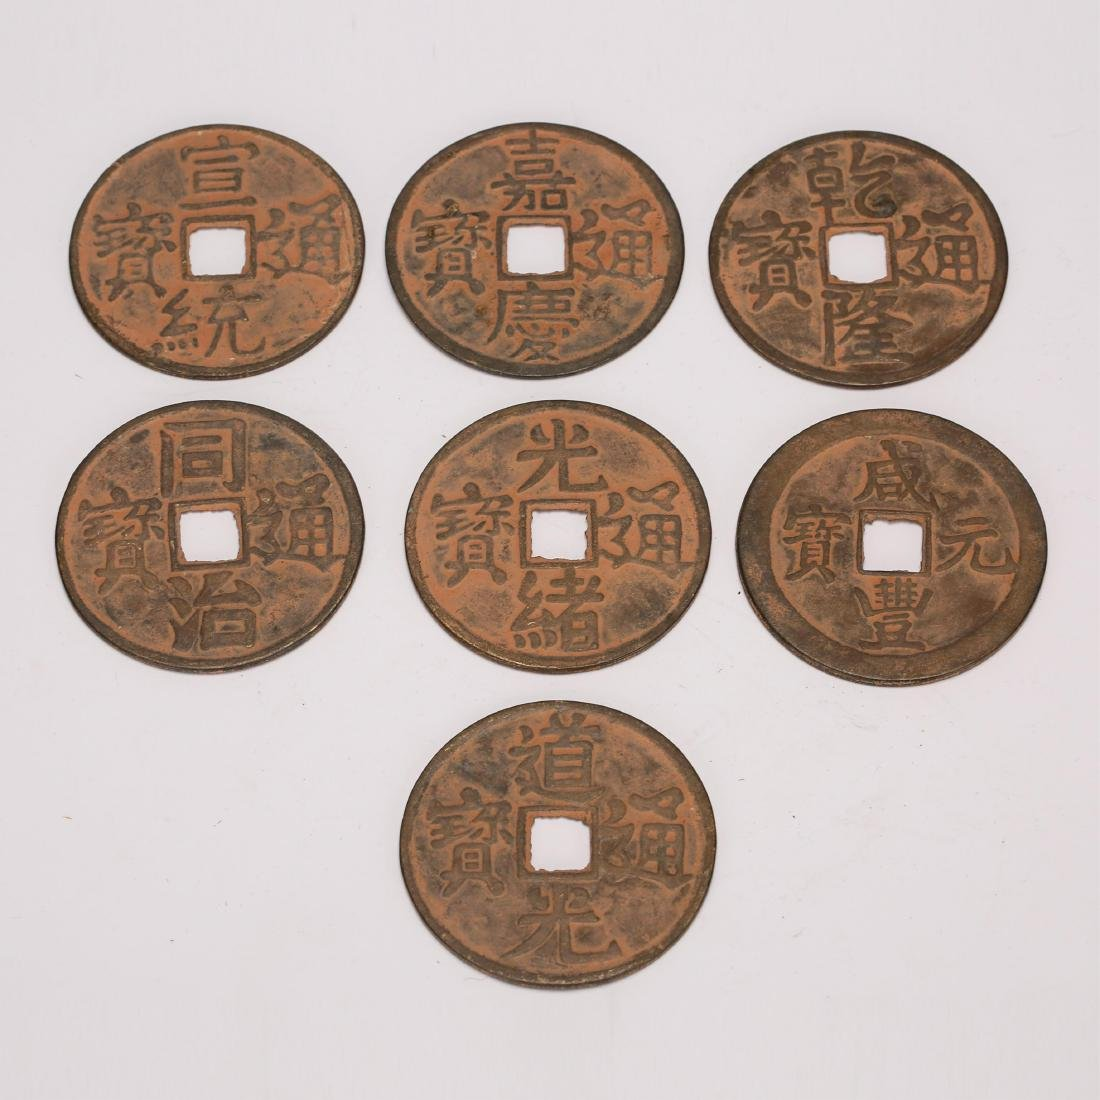 CHINESE ANTIQUE BRONZE COINS